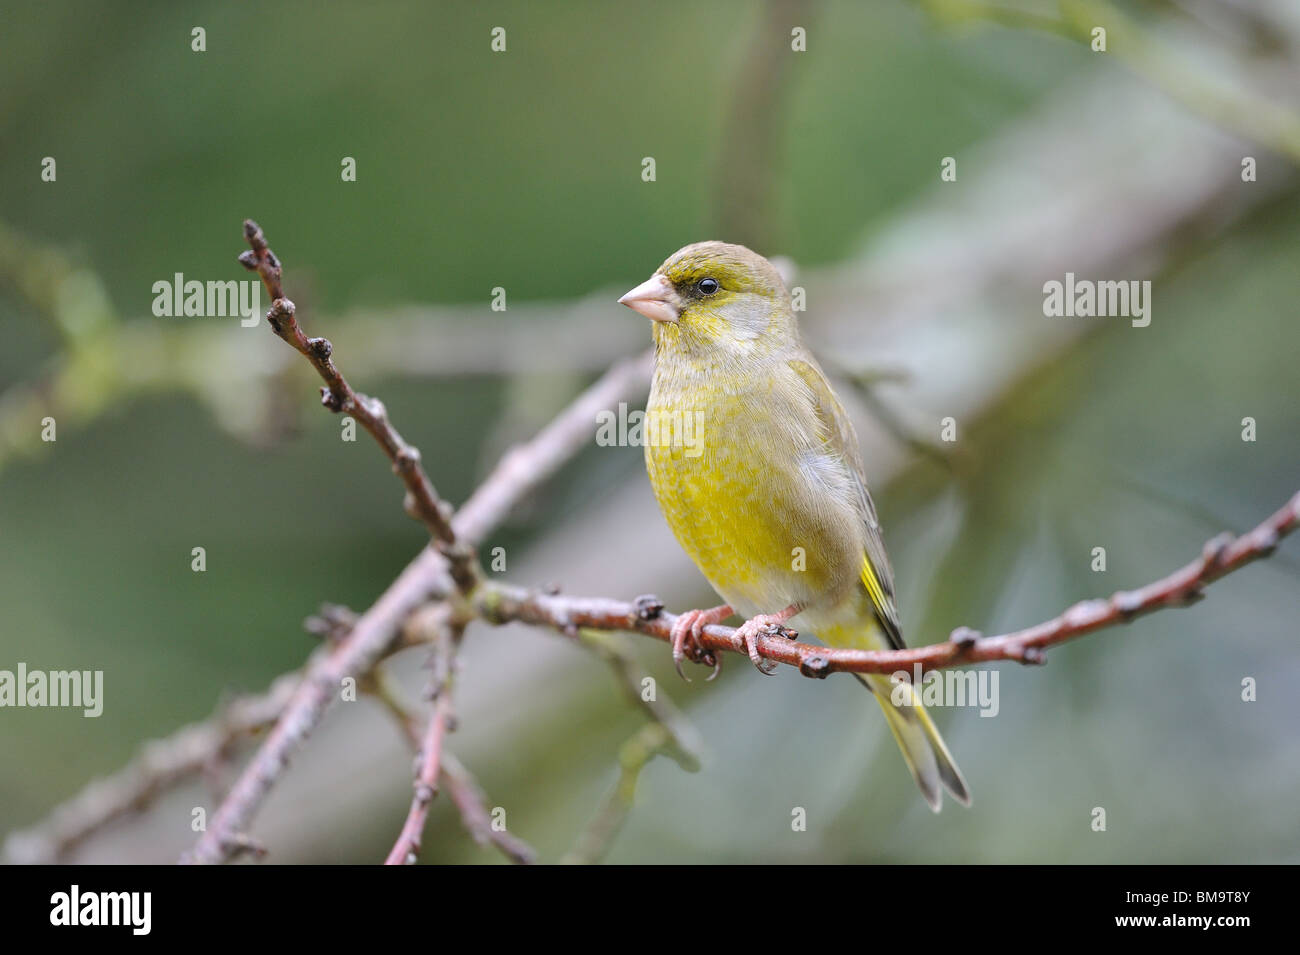 European greenfinch (Carduelis chloris) perched in a tree in winter Stock Photo